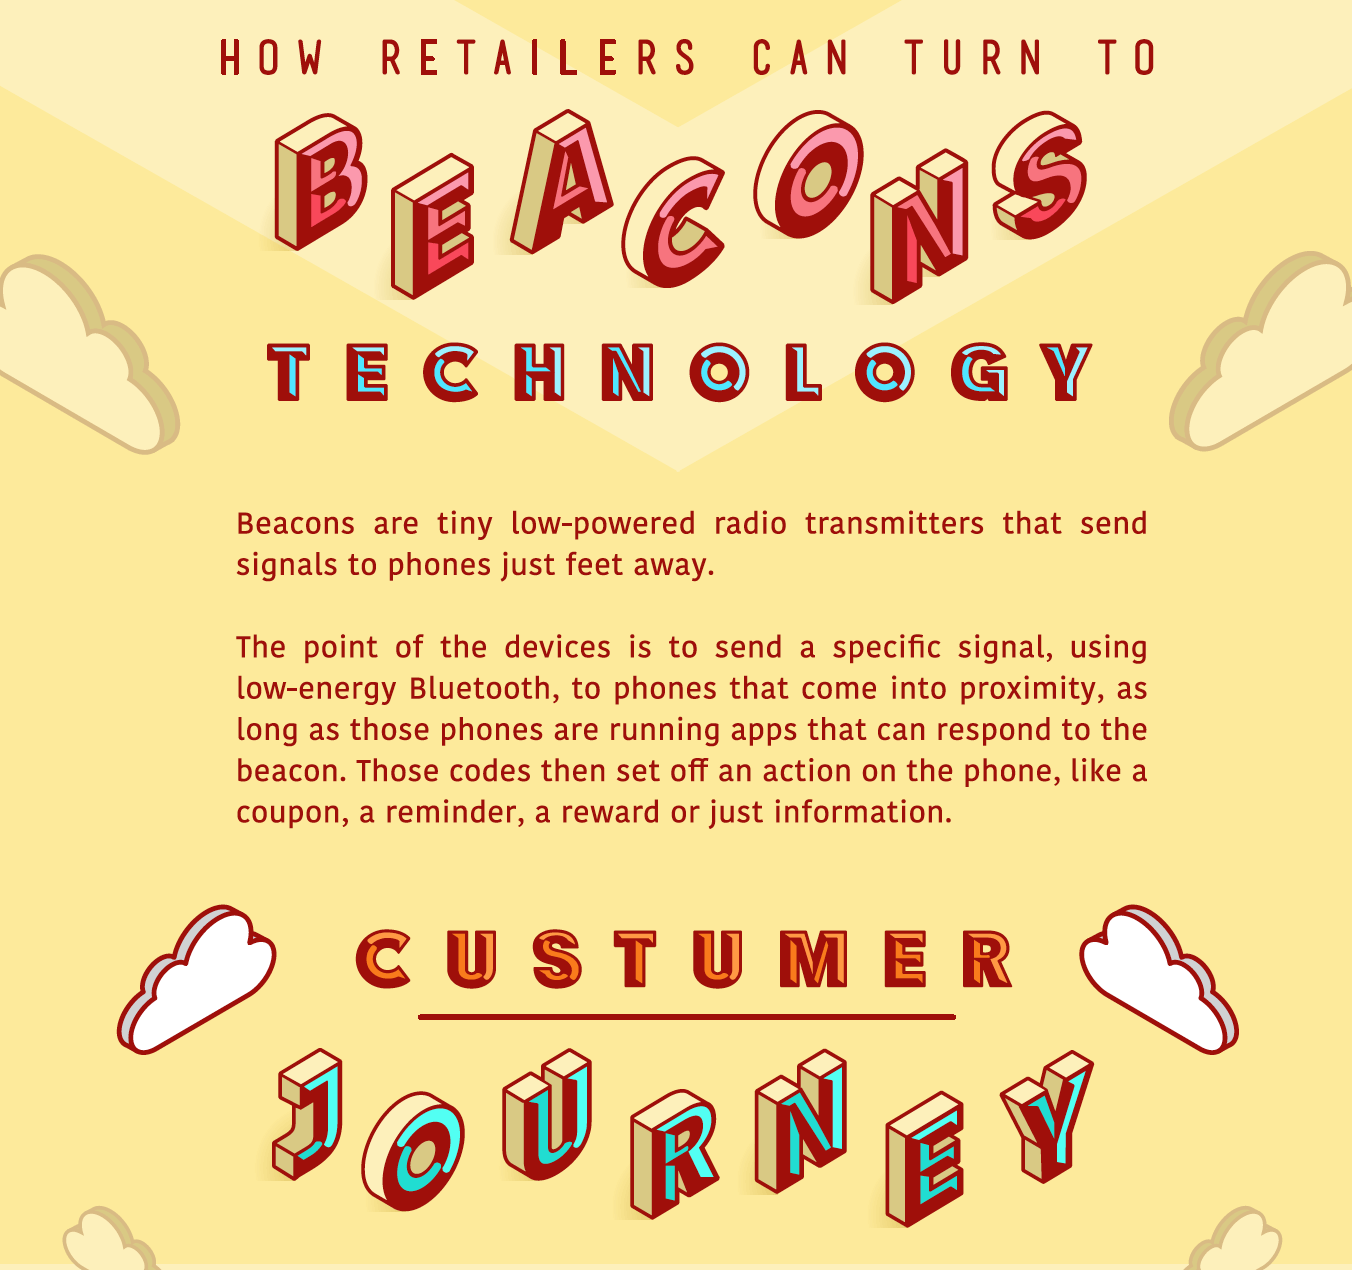 Infographic_How retailers can turn to beacons_EN.png